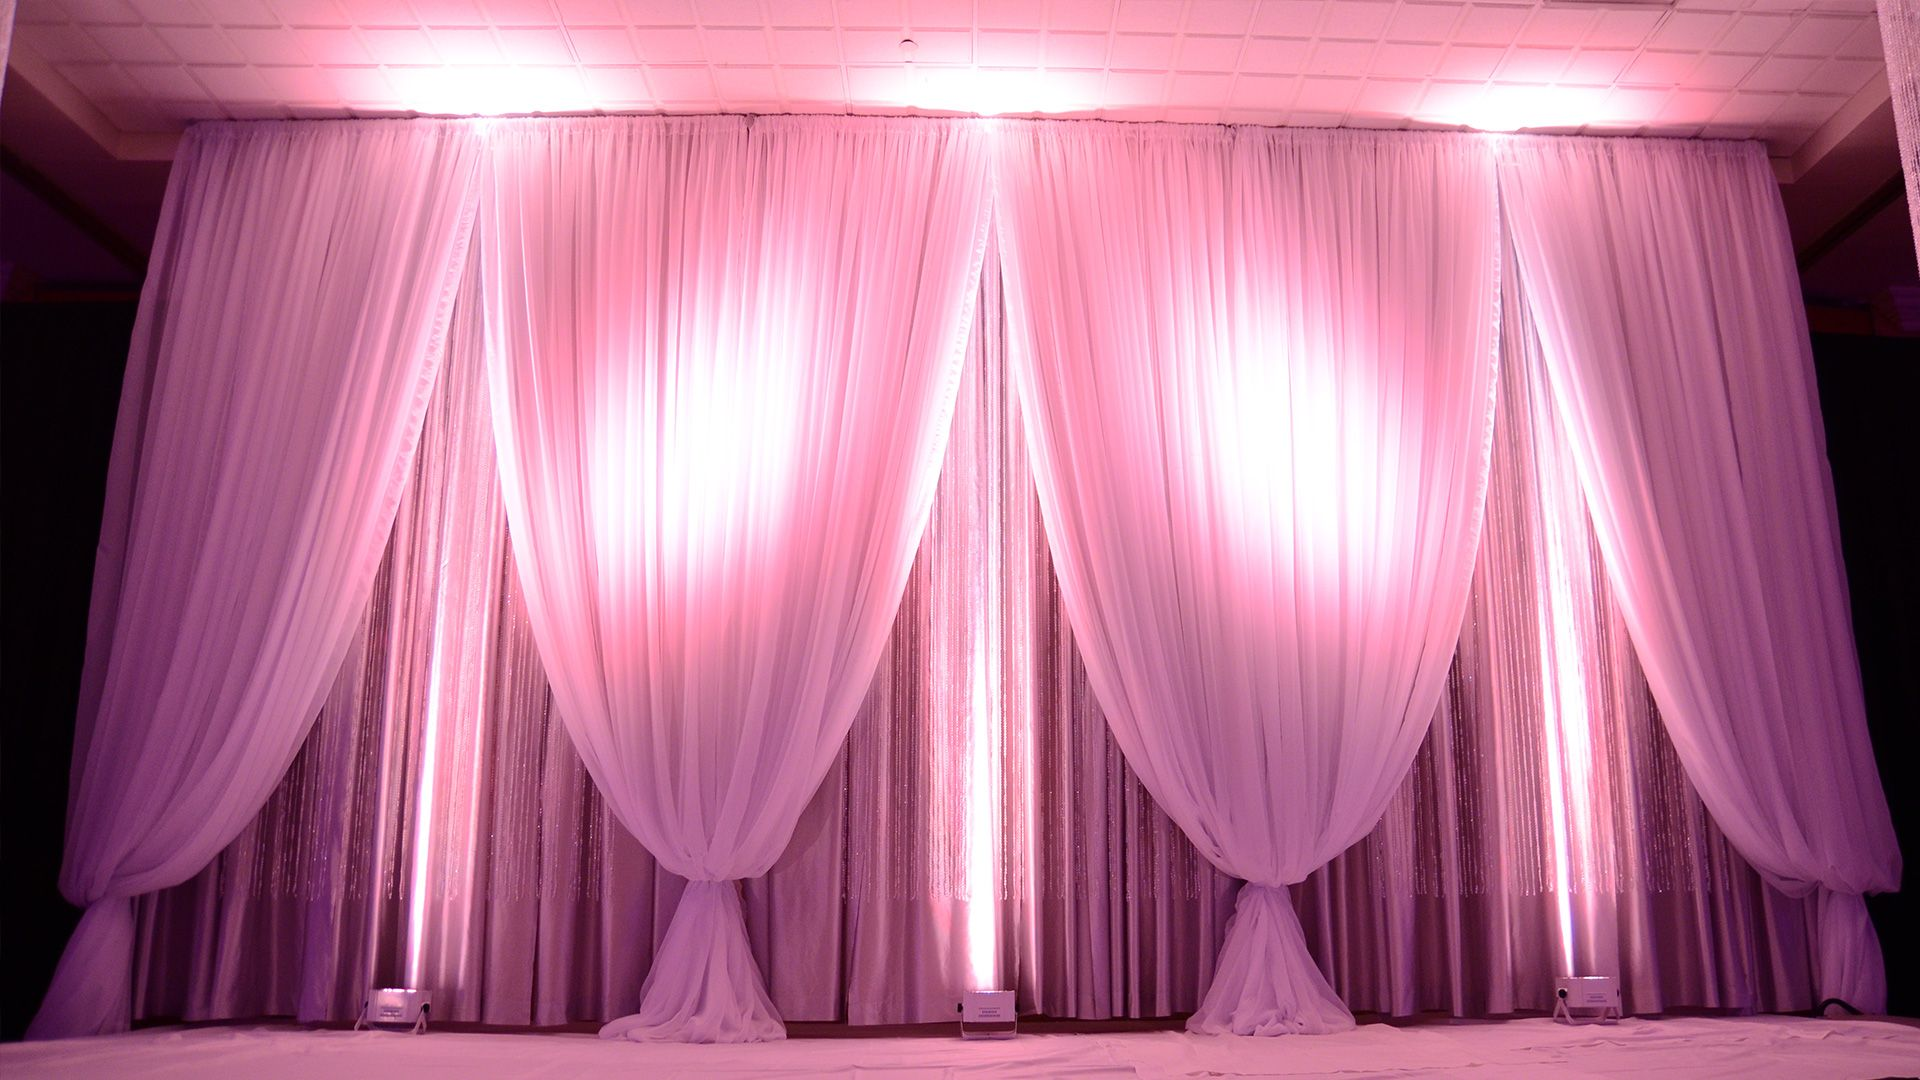 wedding stage decoration pics%0A Triple layer backdrop with iridescent beads   fabulousevents  gorgeous   draping  wedding